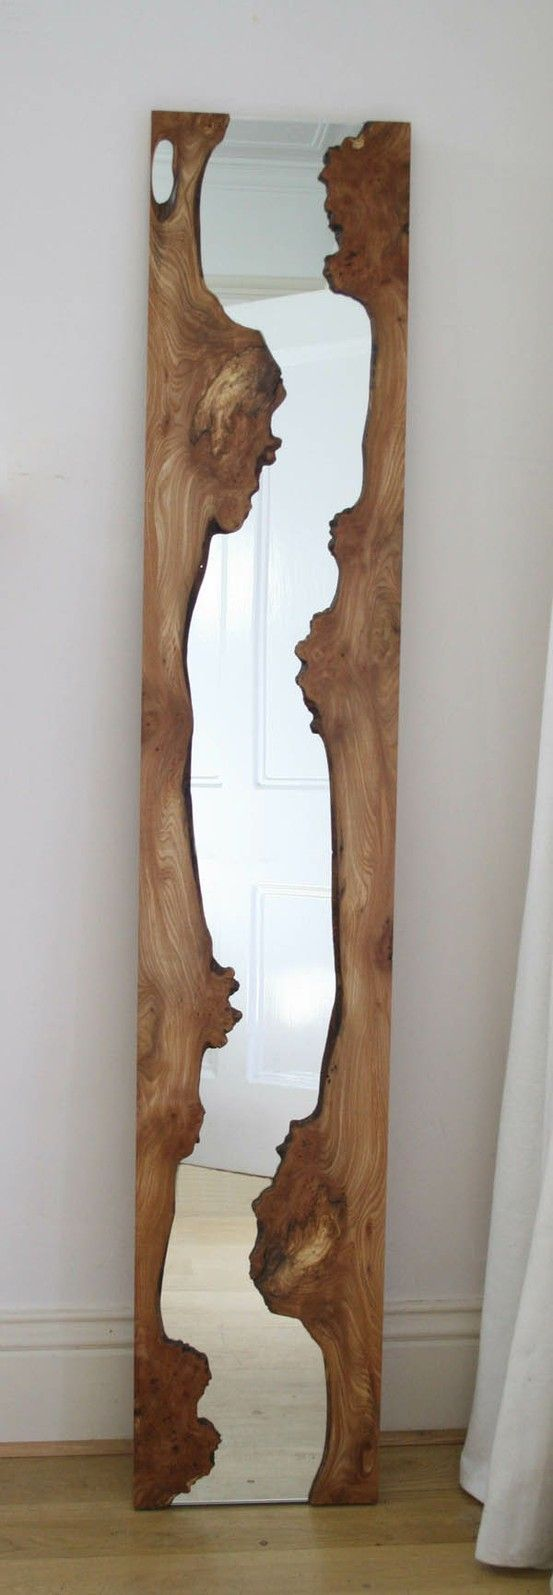 wood river mirror -- This is one way to spice things up. :)